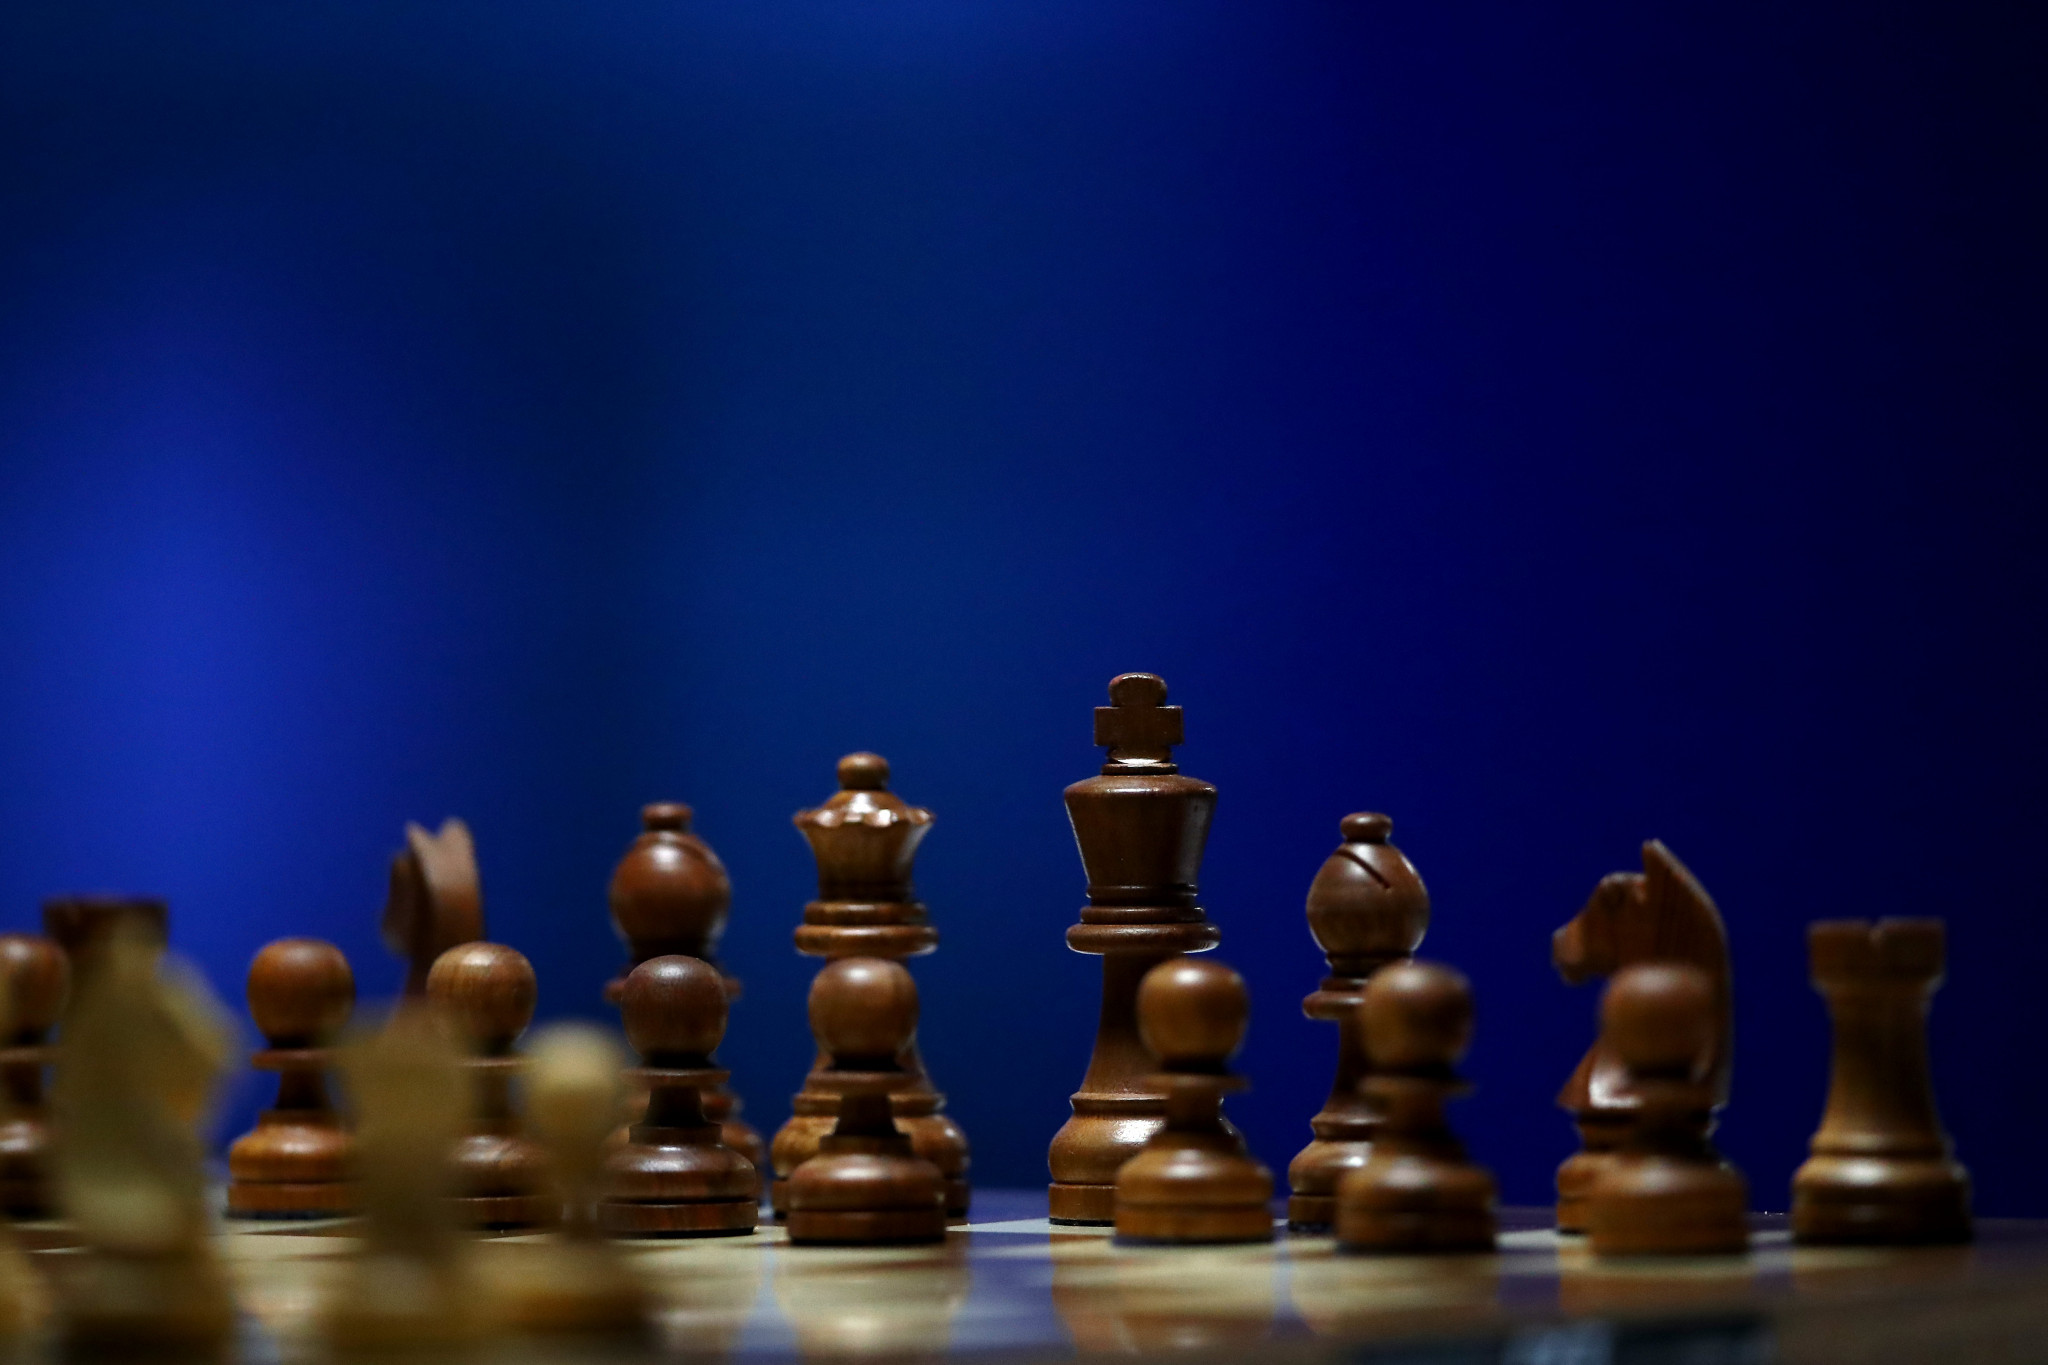 Nepomniachtchi to compete neutrally at World Chess Championships in Dubai